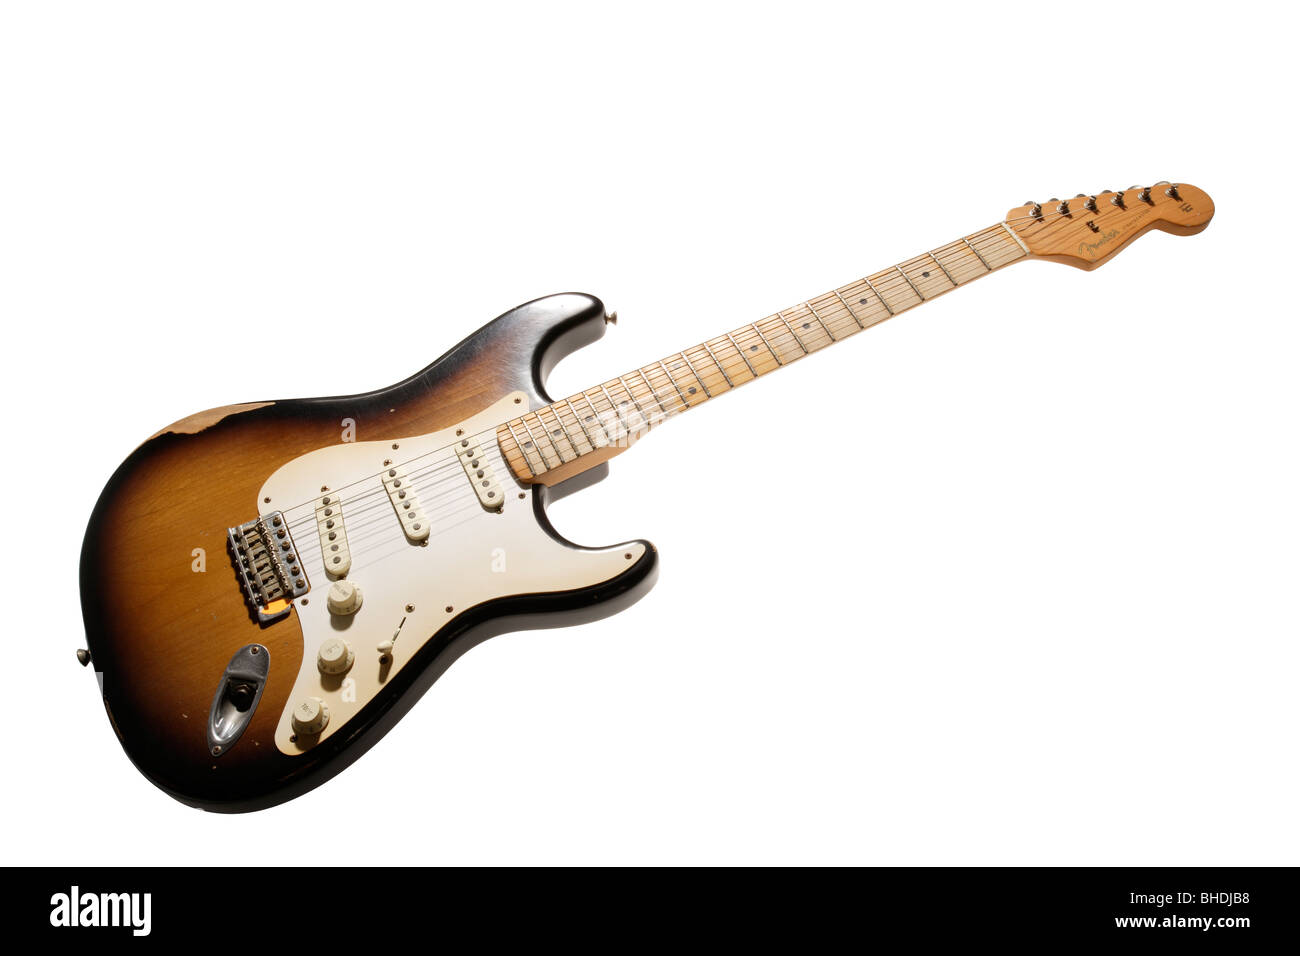 Fender Stratocaster electric guitar - Stock Image